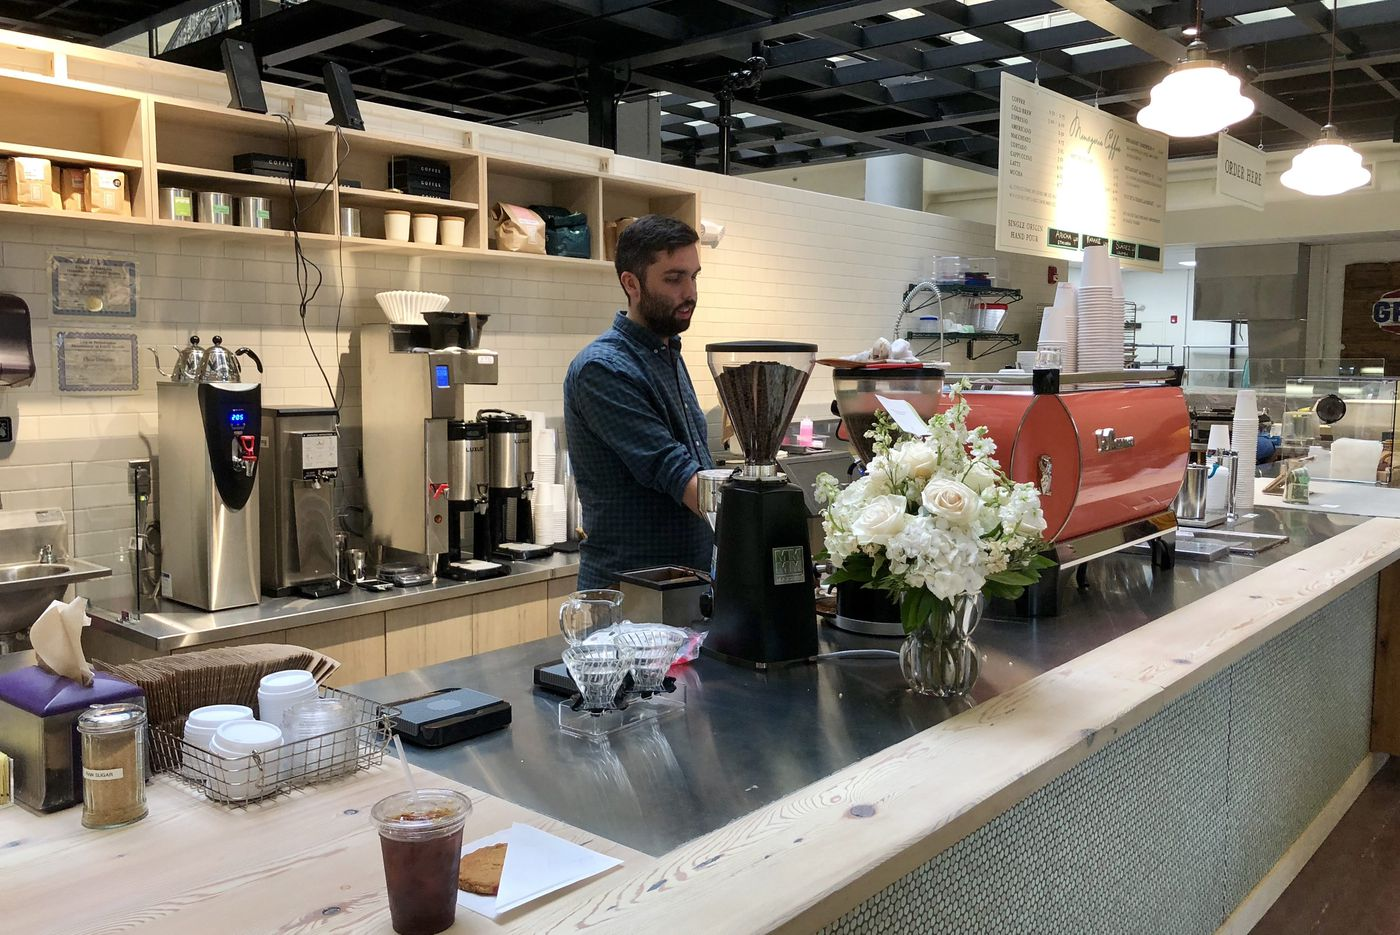 Bourse Food Hall opens softly with Menagerie Coffee